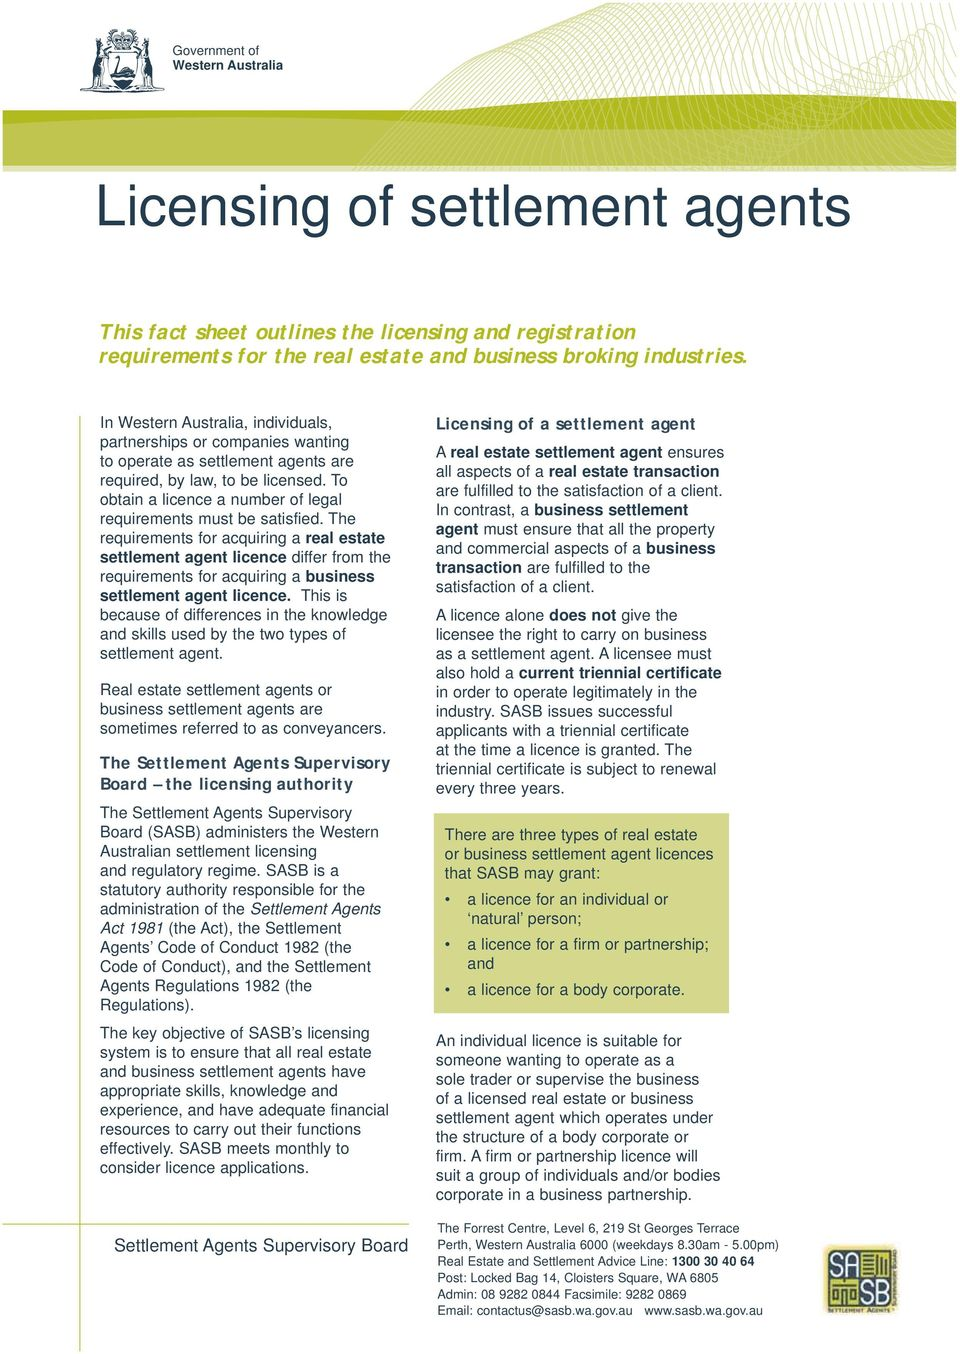 To obtain a licence a number of legal requirements must be satisfied.